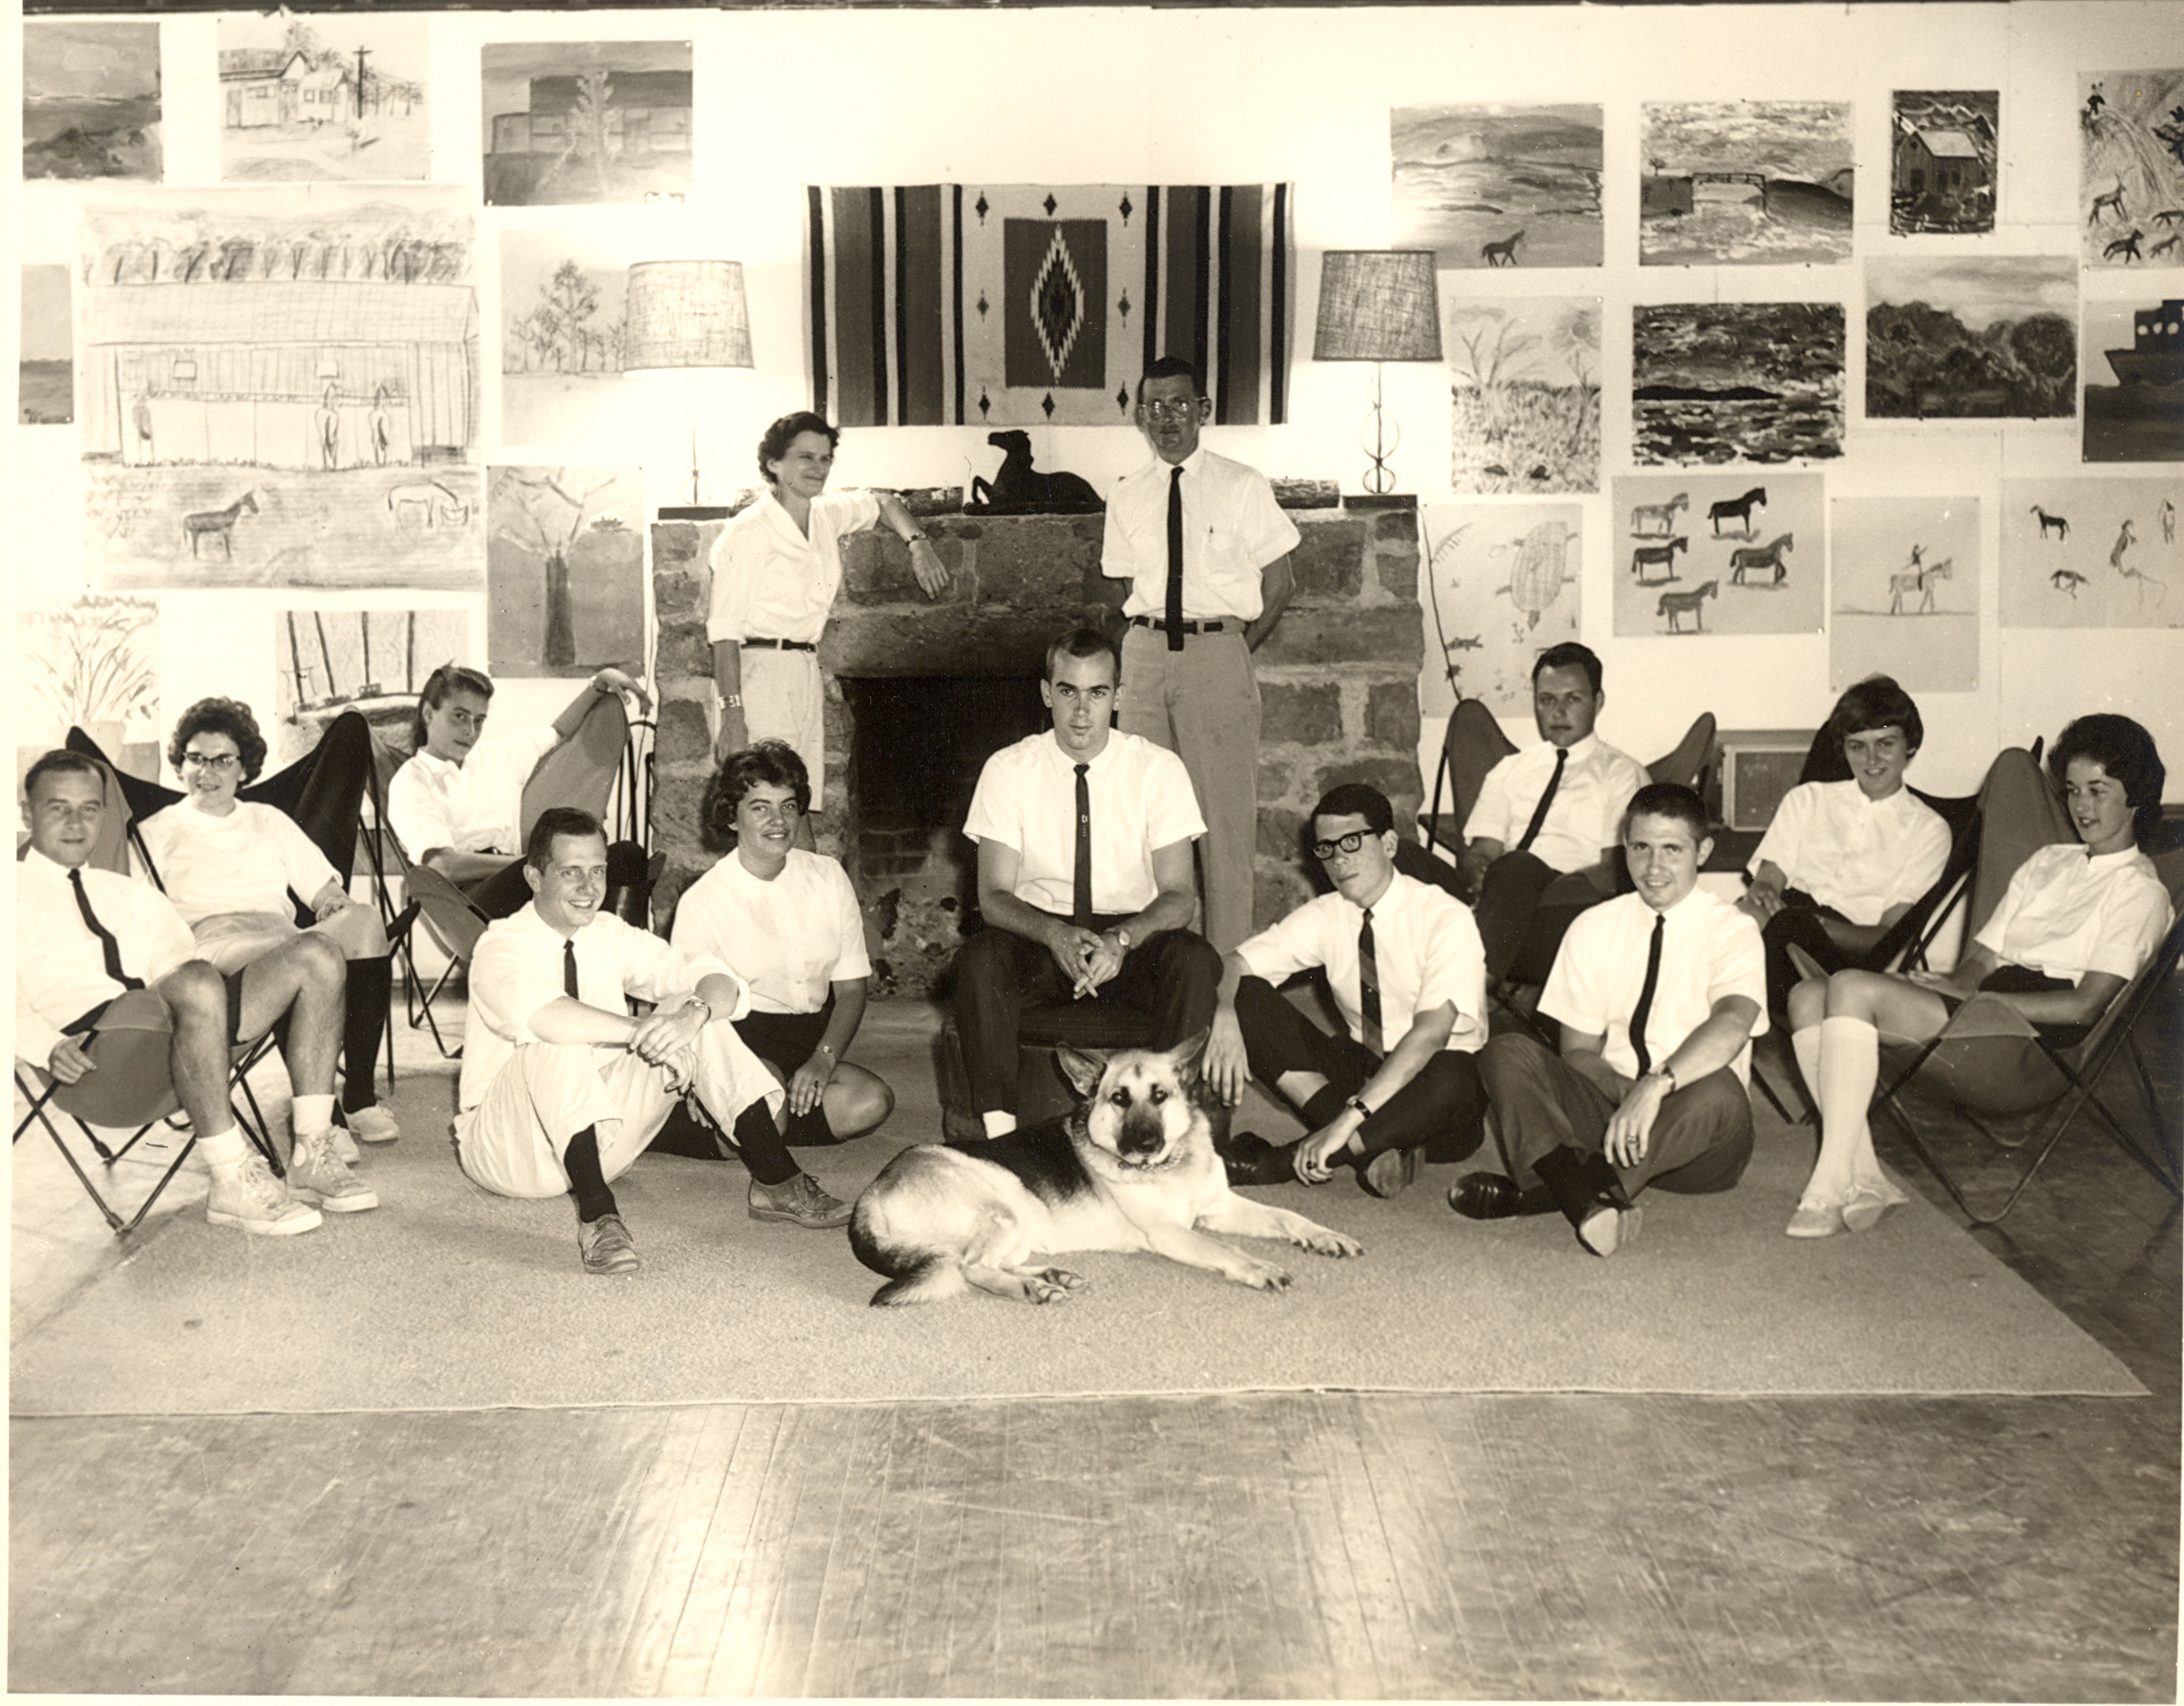 Black and white photo of teachers in shirt and tie at Camp Dunnabeck, german shepherd in front.